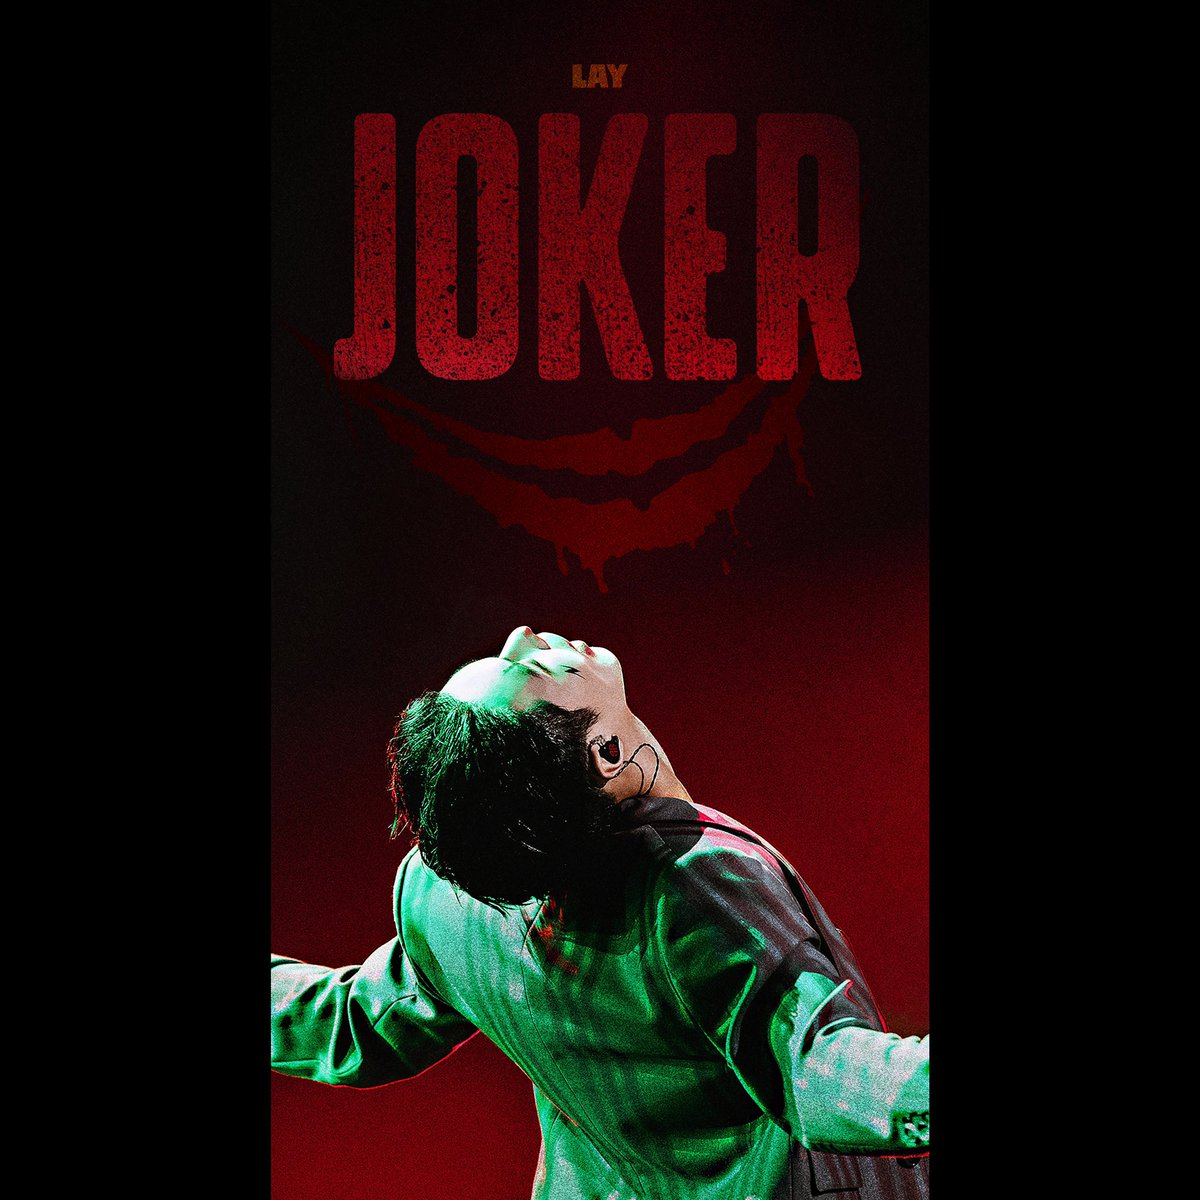 I am glad to announce my single JOKER is out now! I'm so happy I can share it with you all^^ LINK TO LISTEN: LAY.lnk.to/Joker